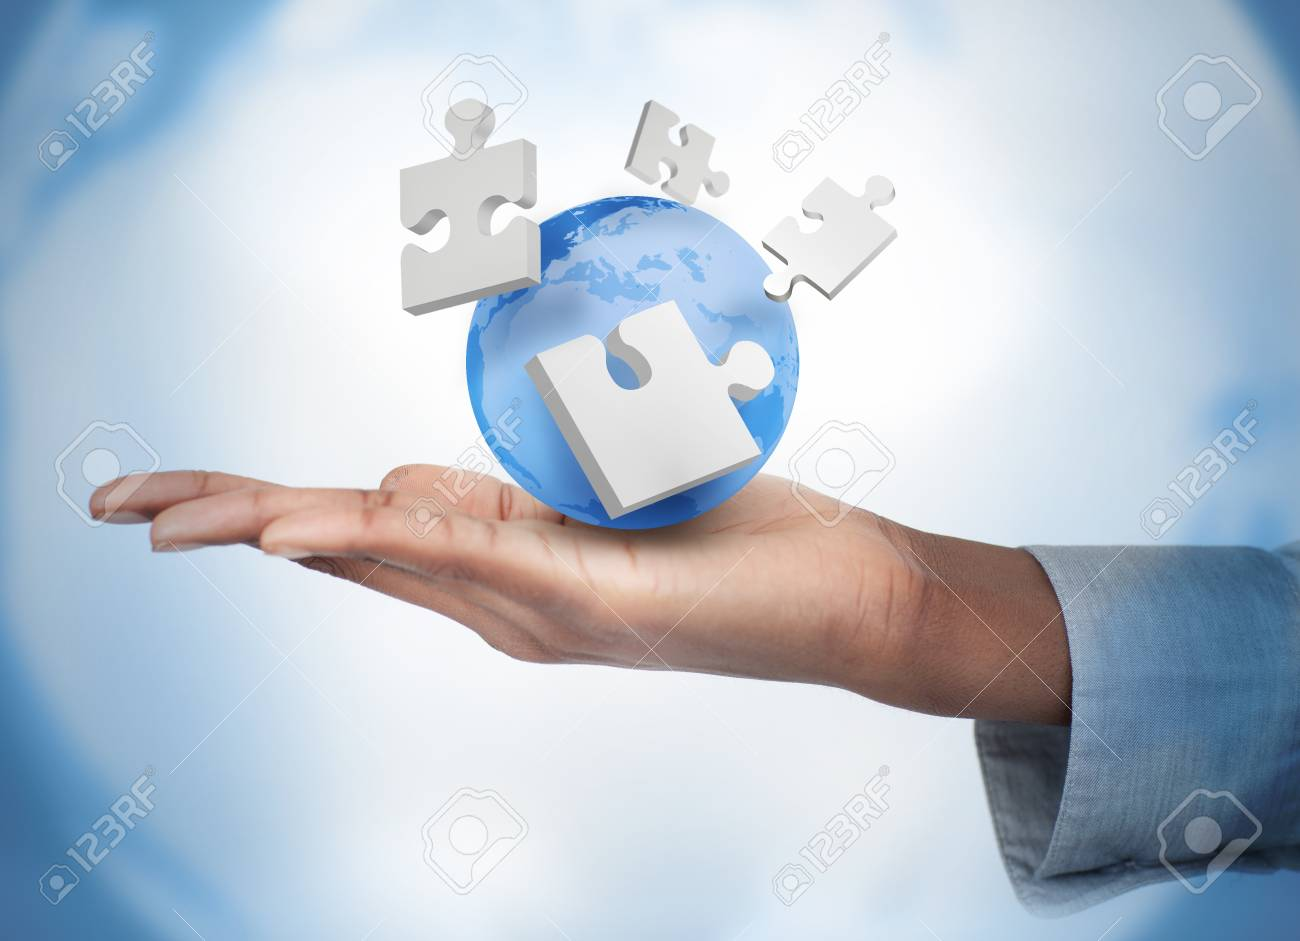 Hand with digital puzzles and a globe against a digital background Stock Photo - 18132249